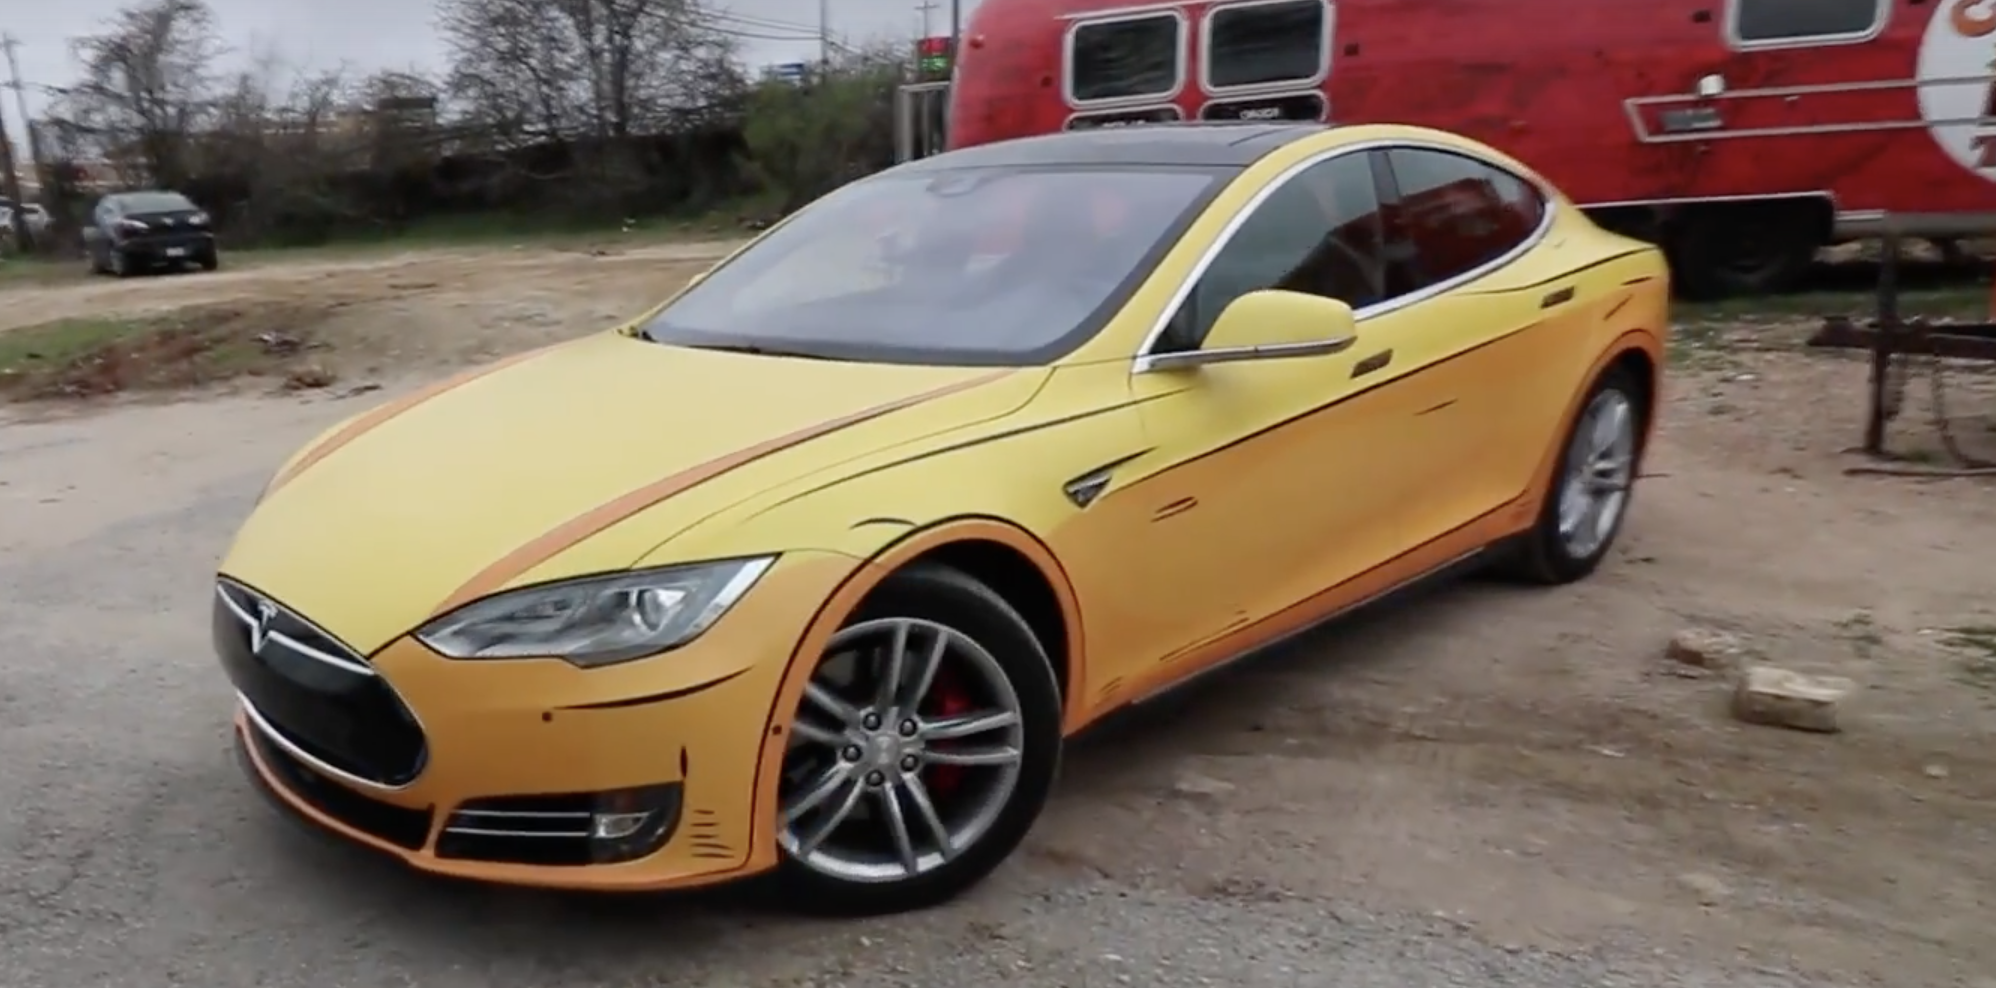 Tesla Owner Wrapped His Model S To Make It Look Like A Cel